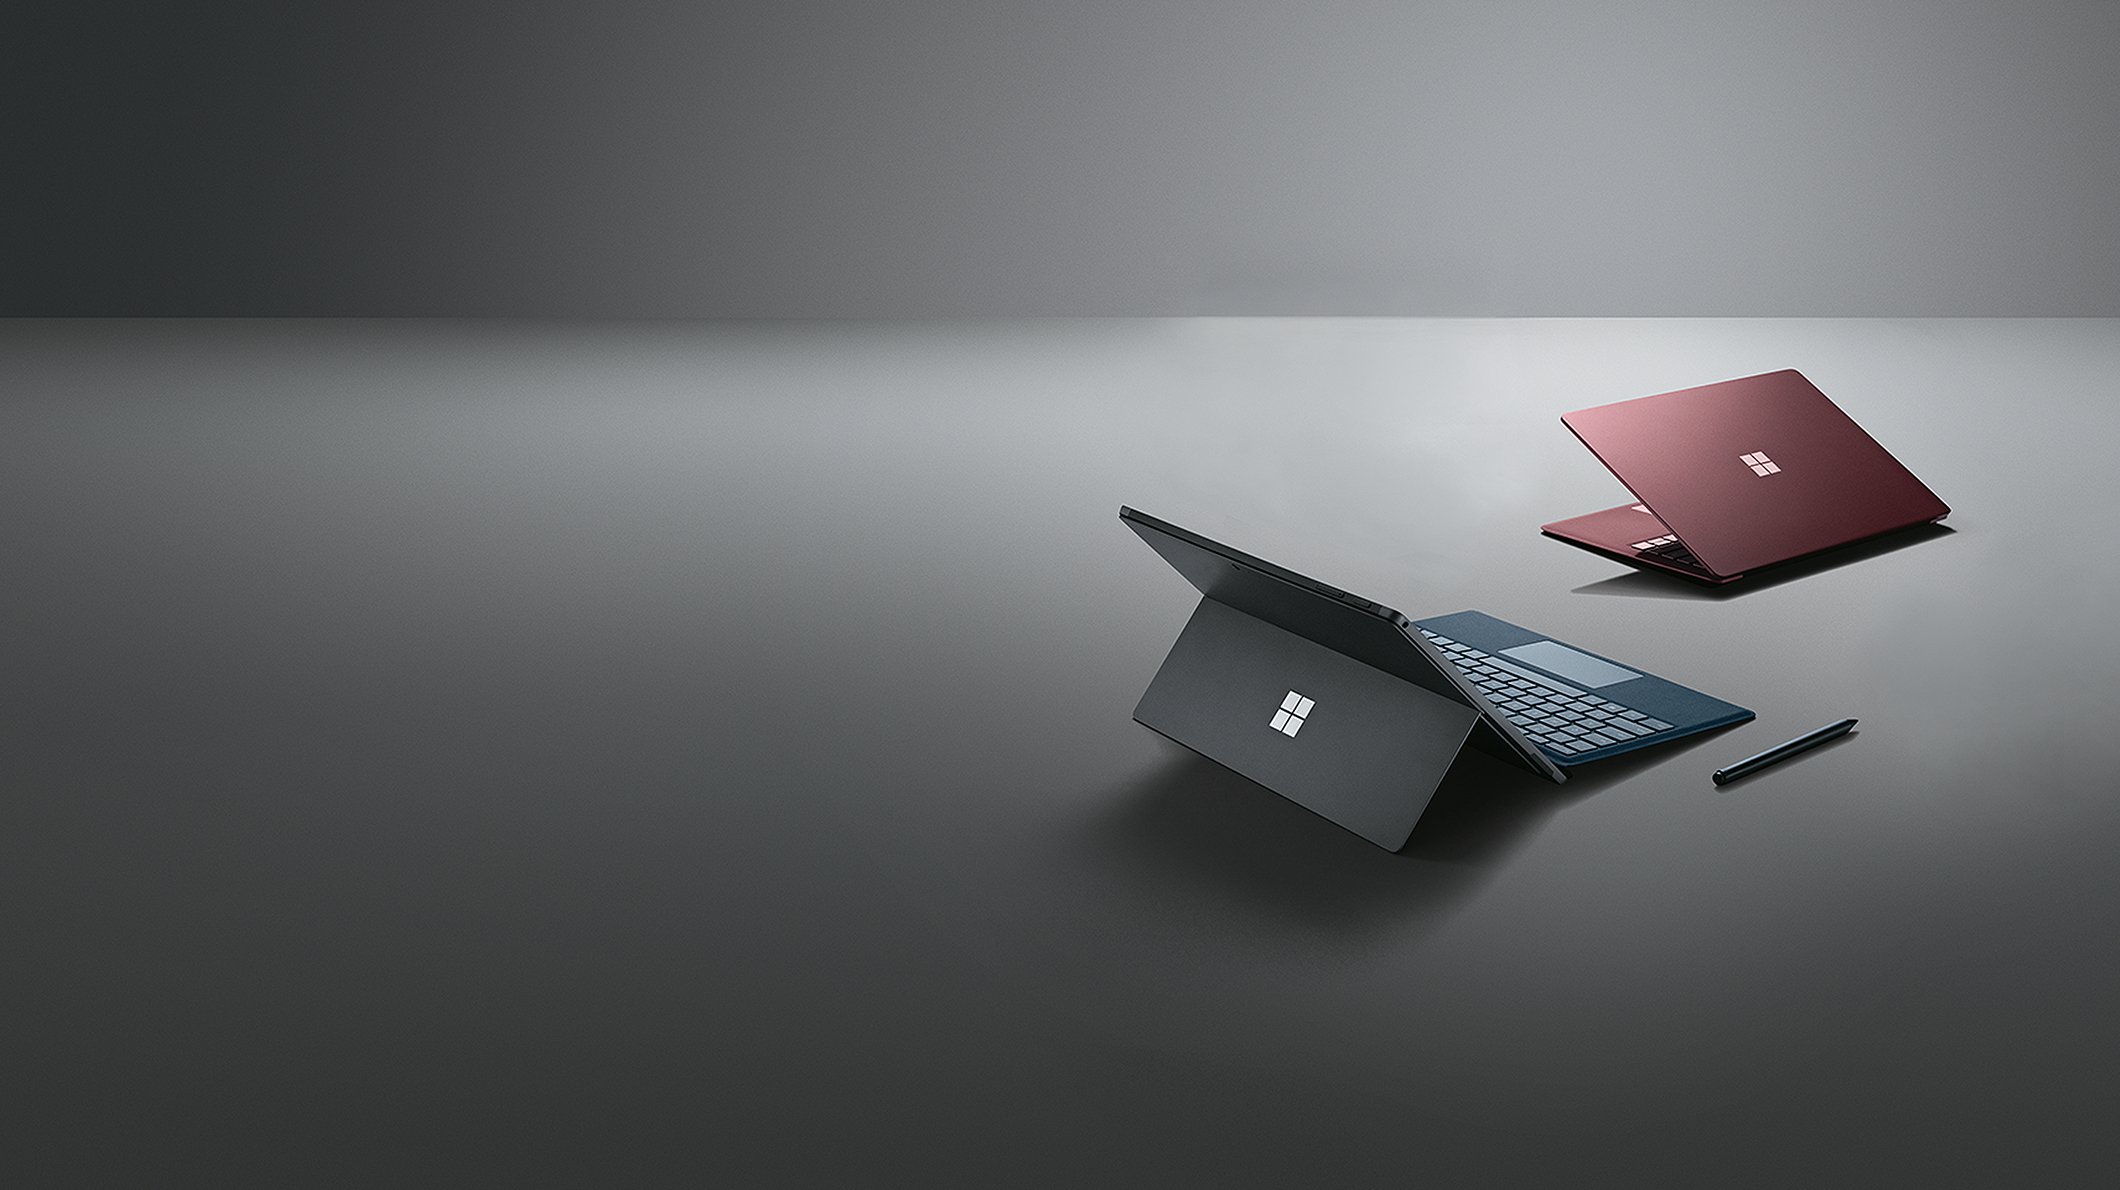 置于特定展示角度的 Surface Pro 6、Surface Pen 和 Surface Laptop 2